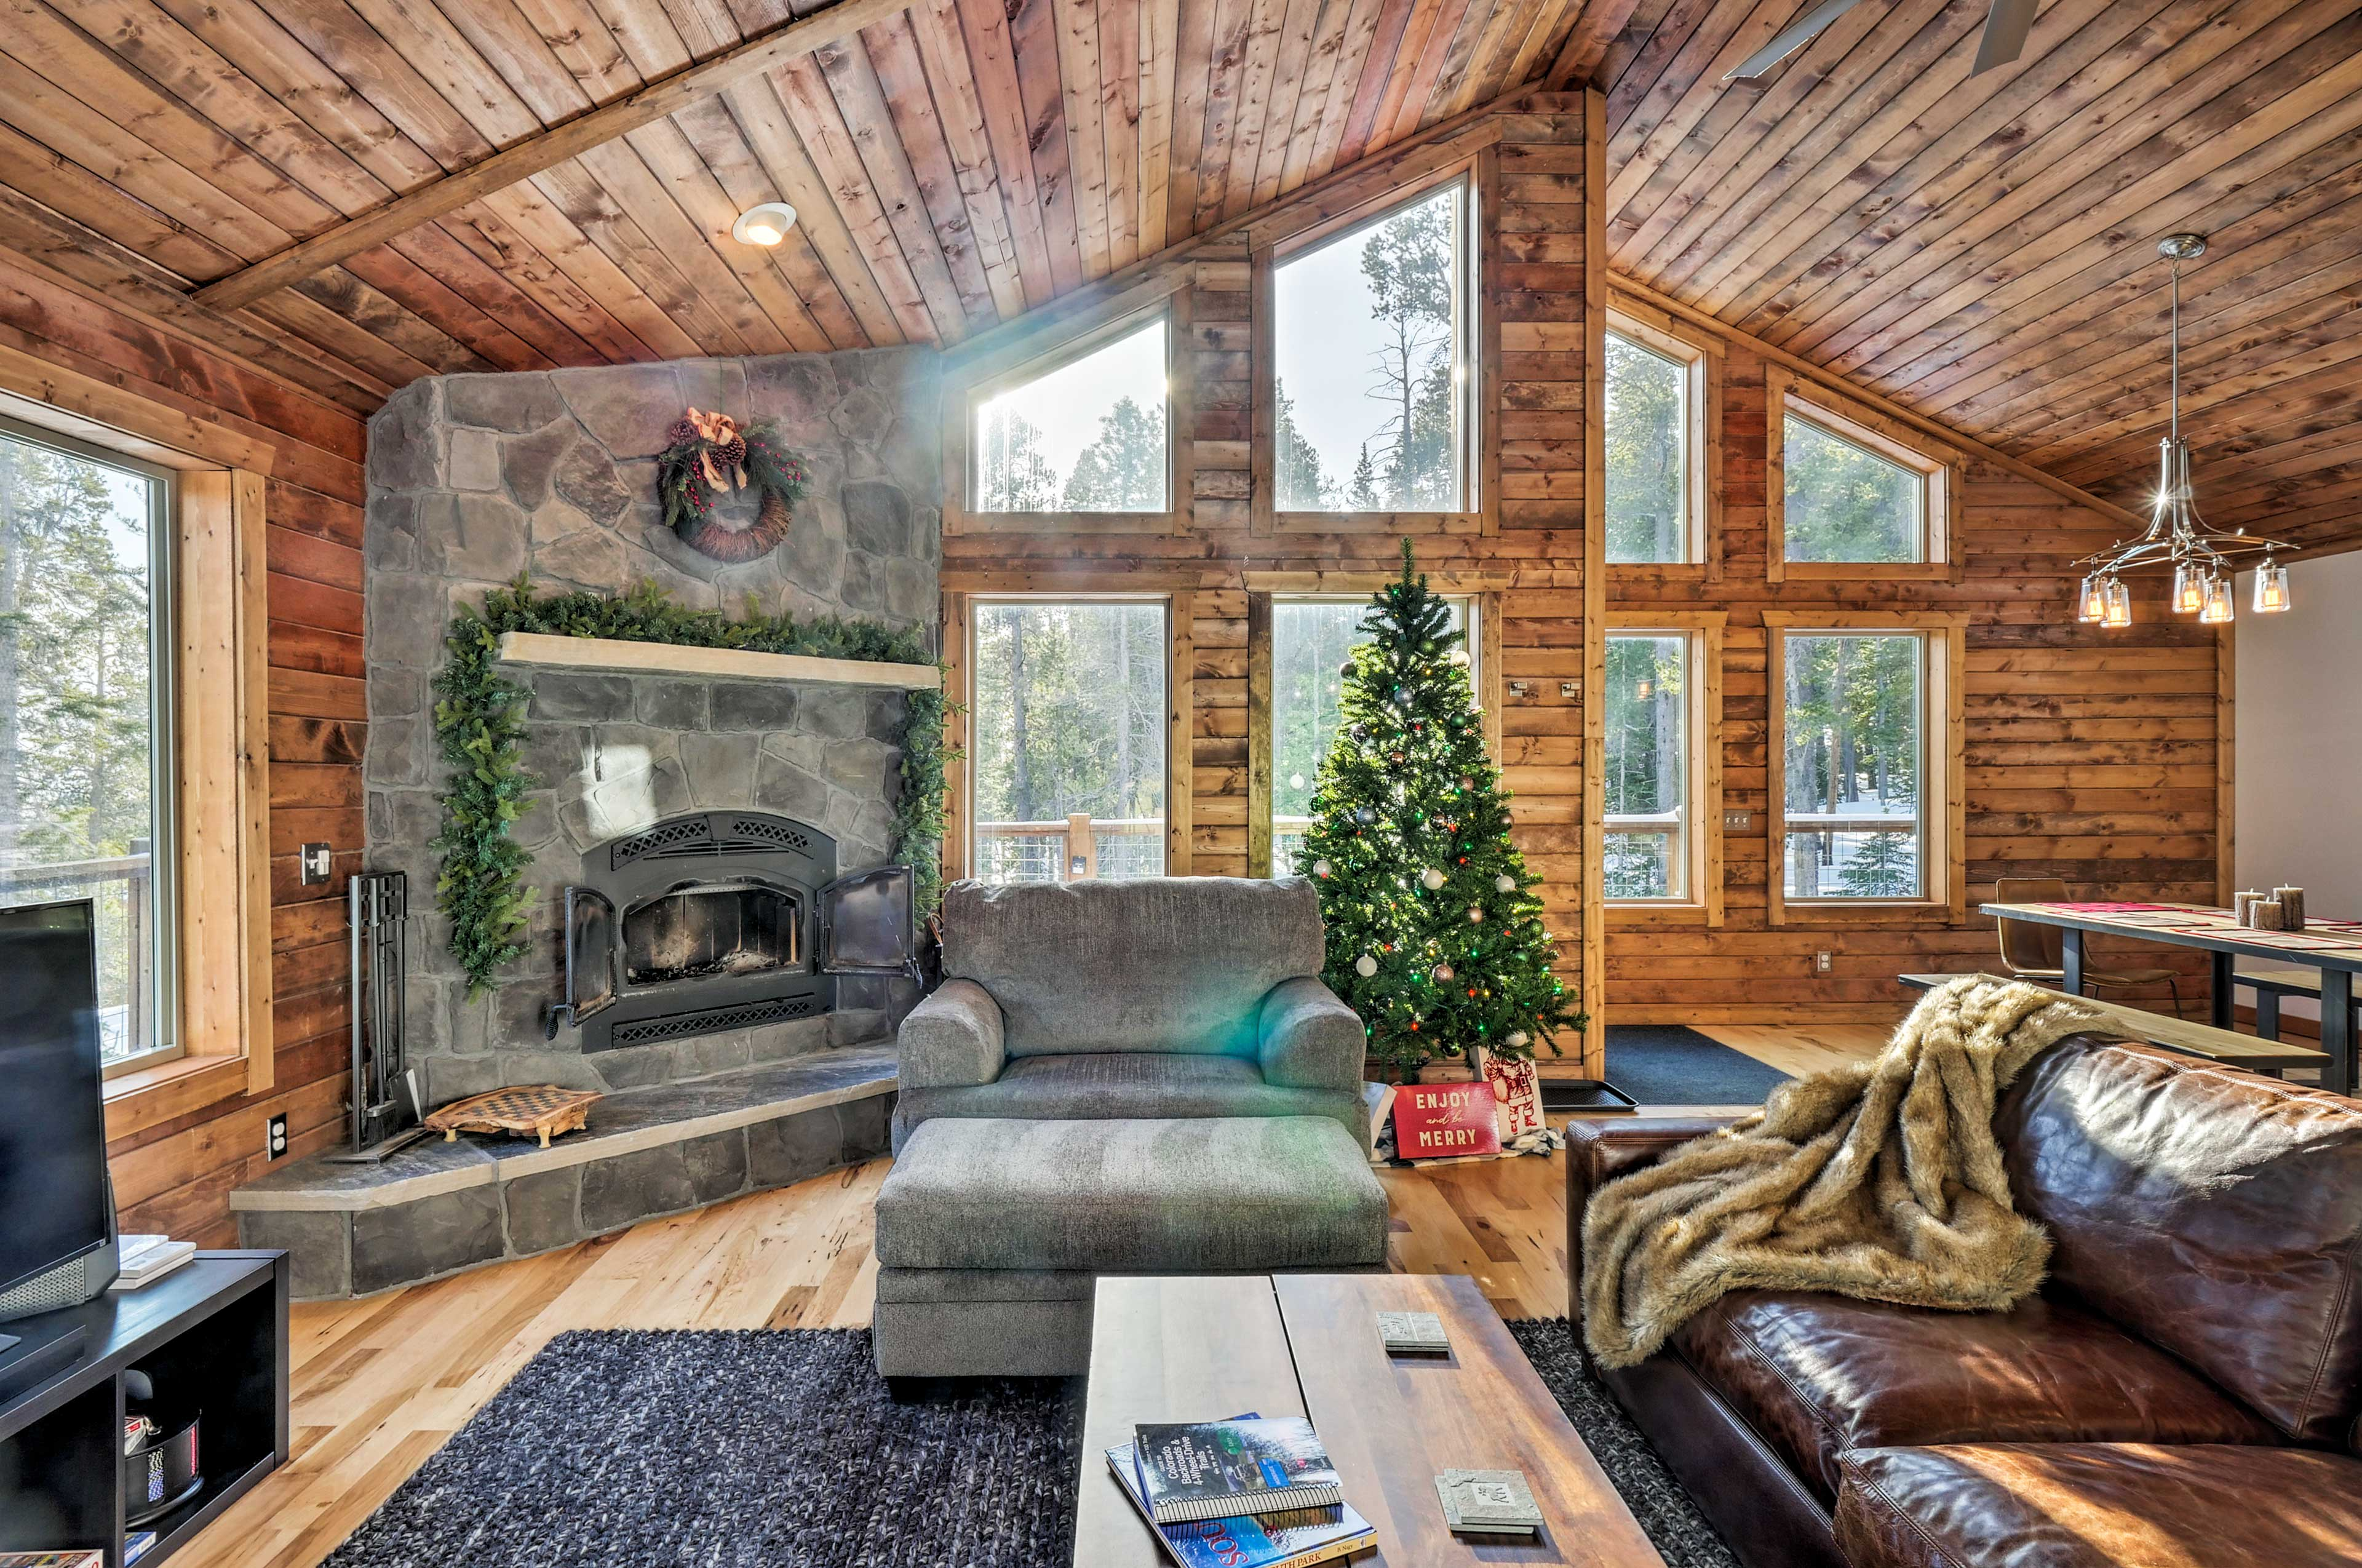 Retreat to this peaceful Fairplay cabin for a relaxing Rocky Mountain retreat!